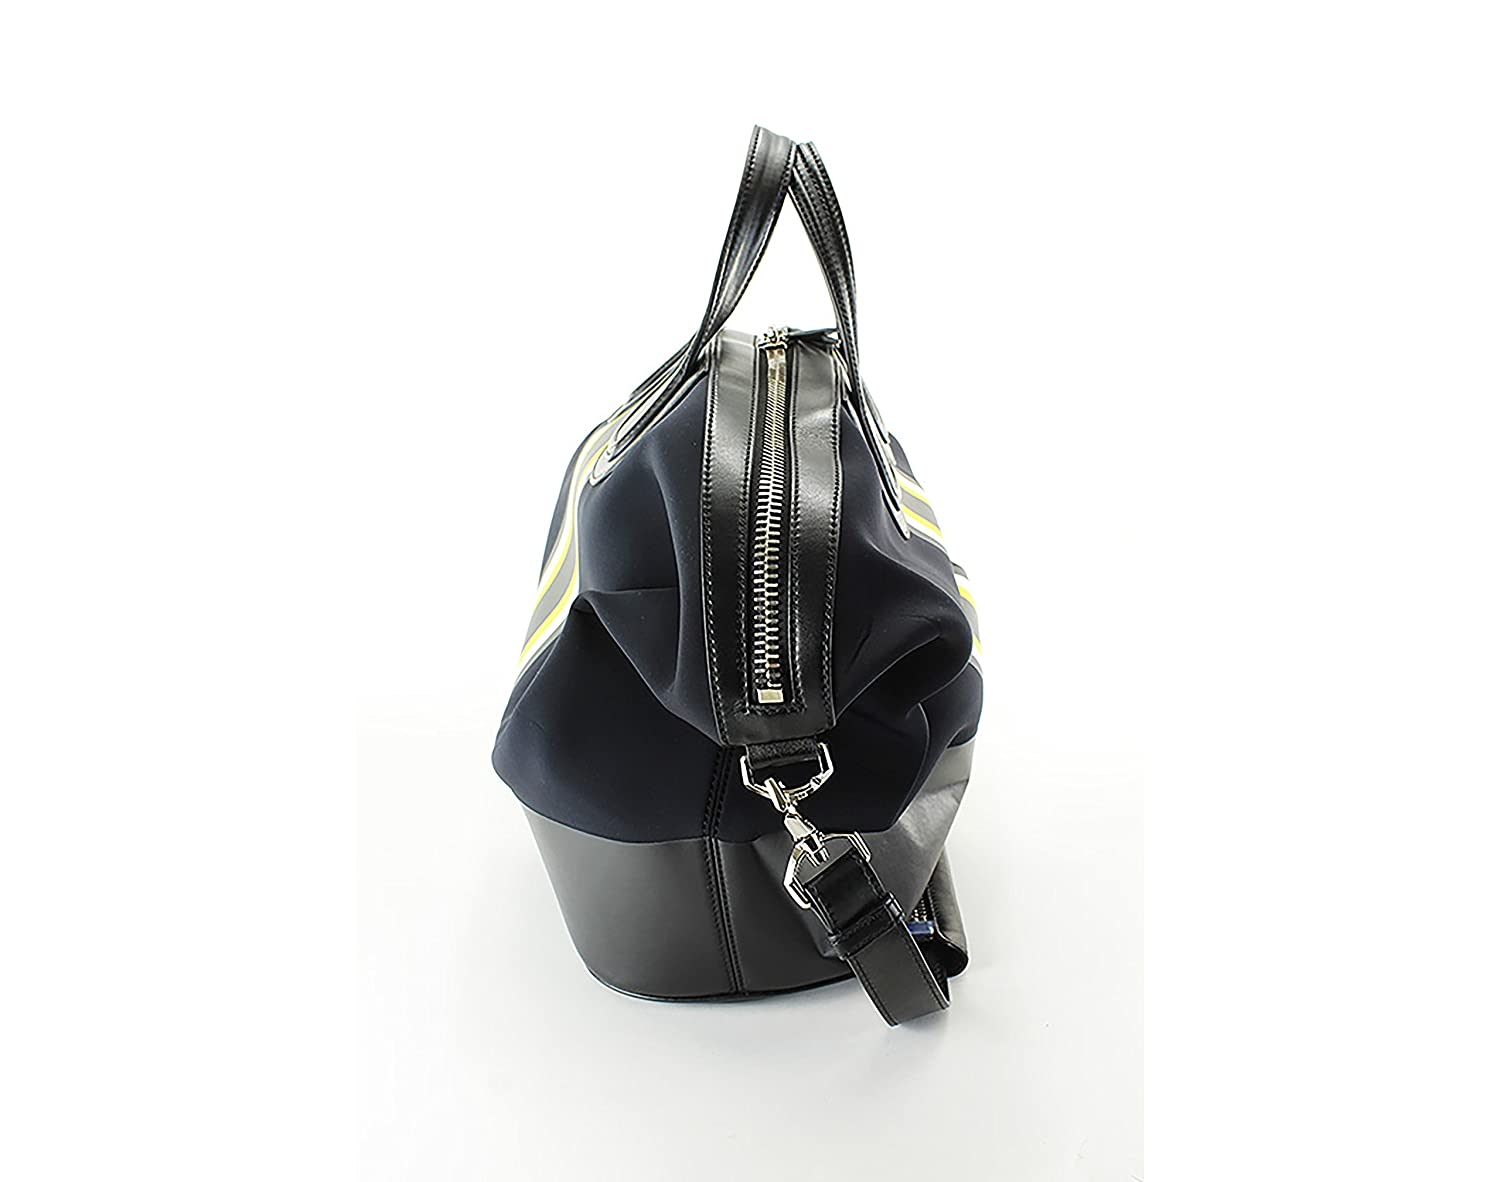 56a74409e7 Givenchy Striped Neoprene Weekend Bag - Solid Black Polyamide   Amazon.co.uk  Shoes   Bags